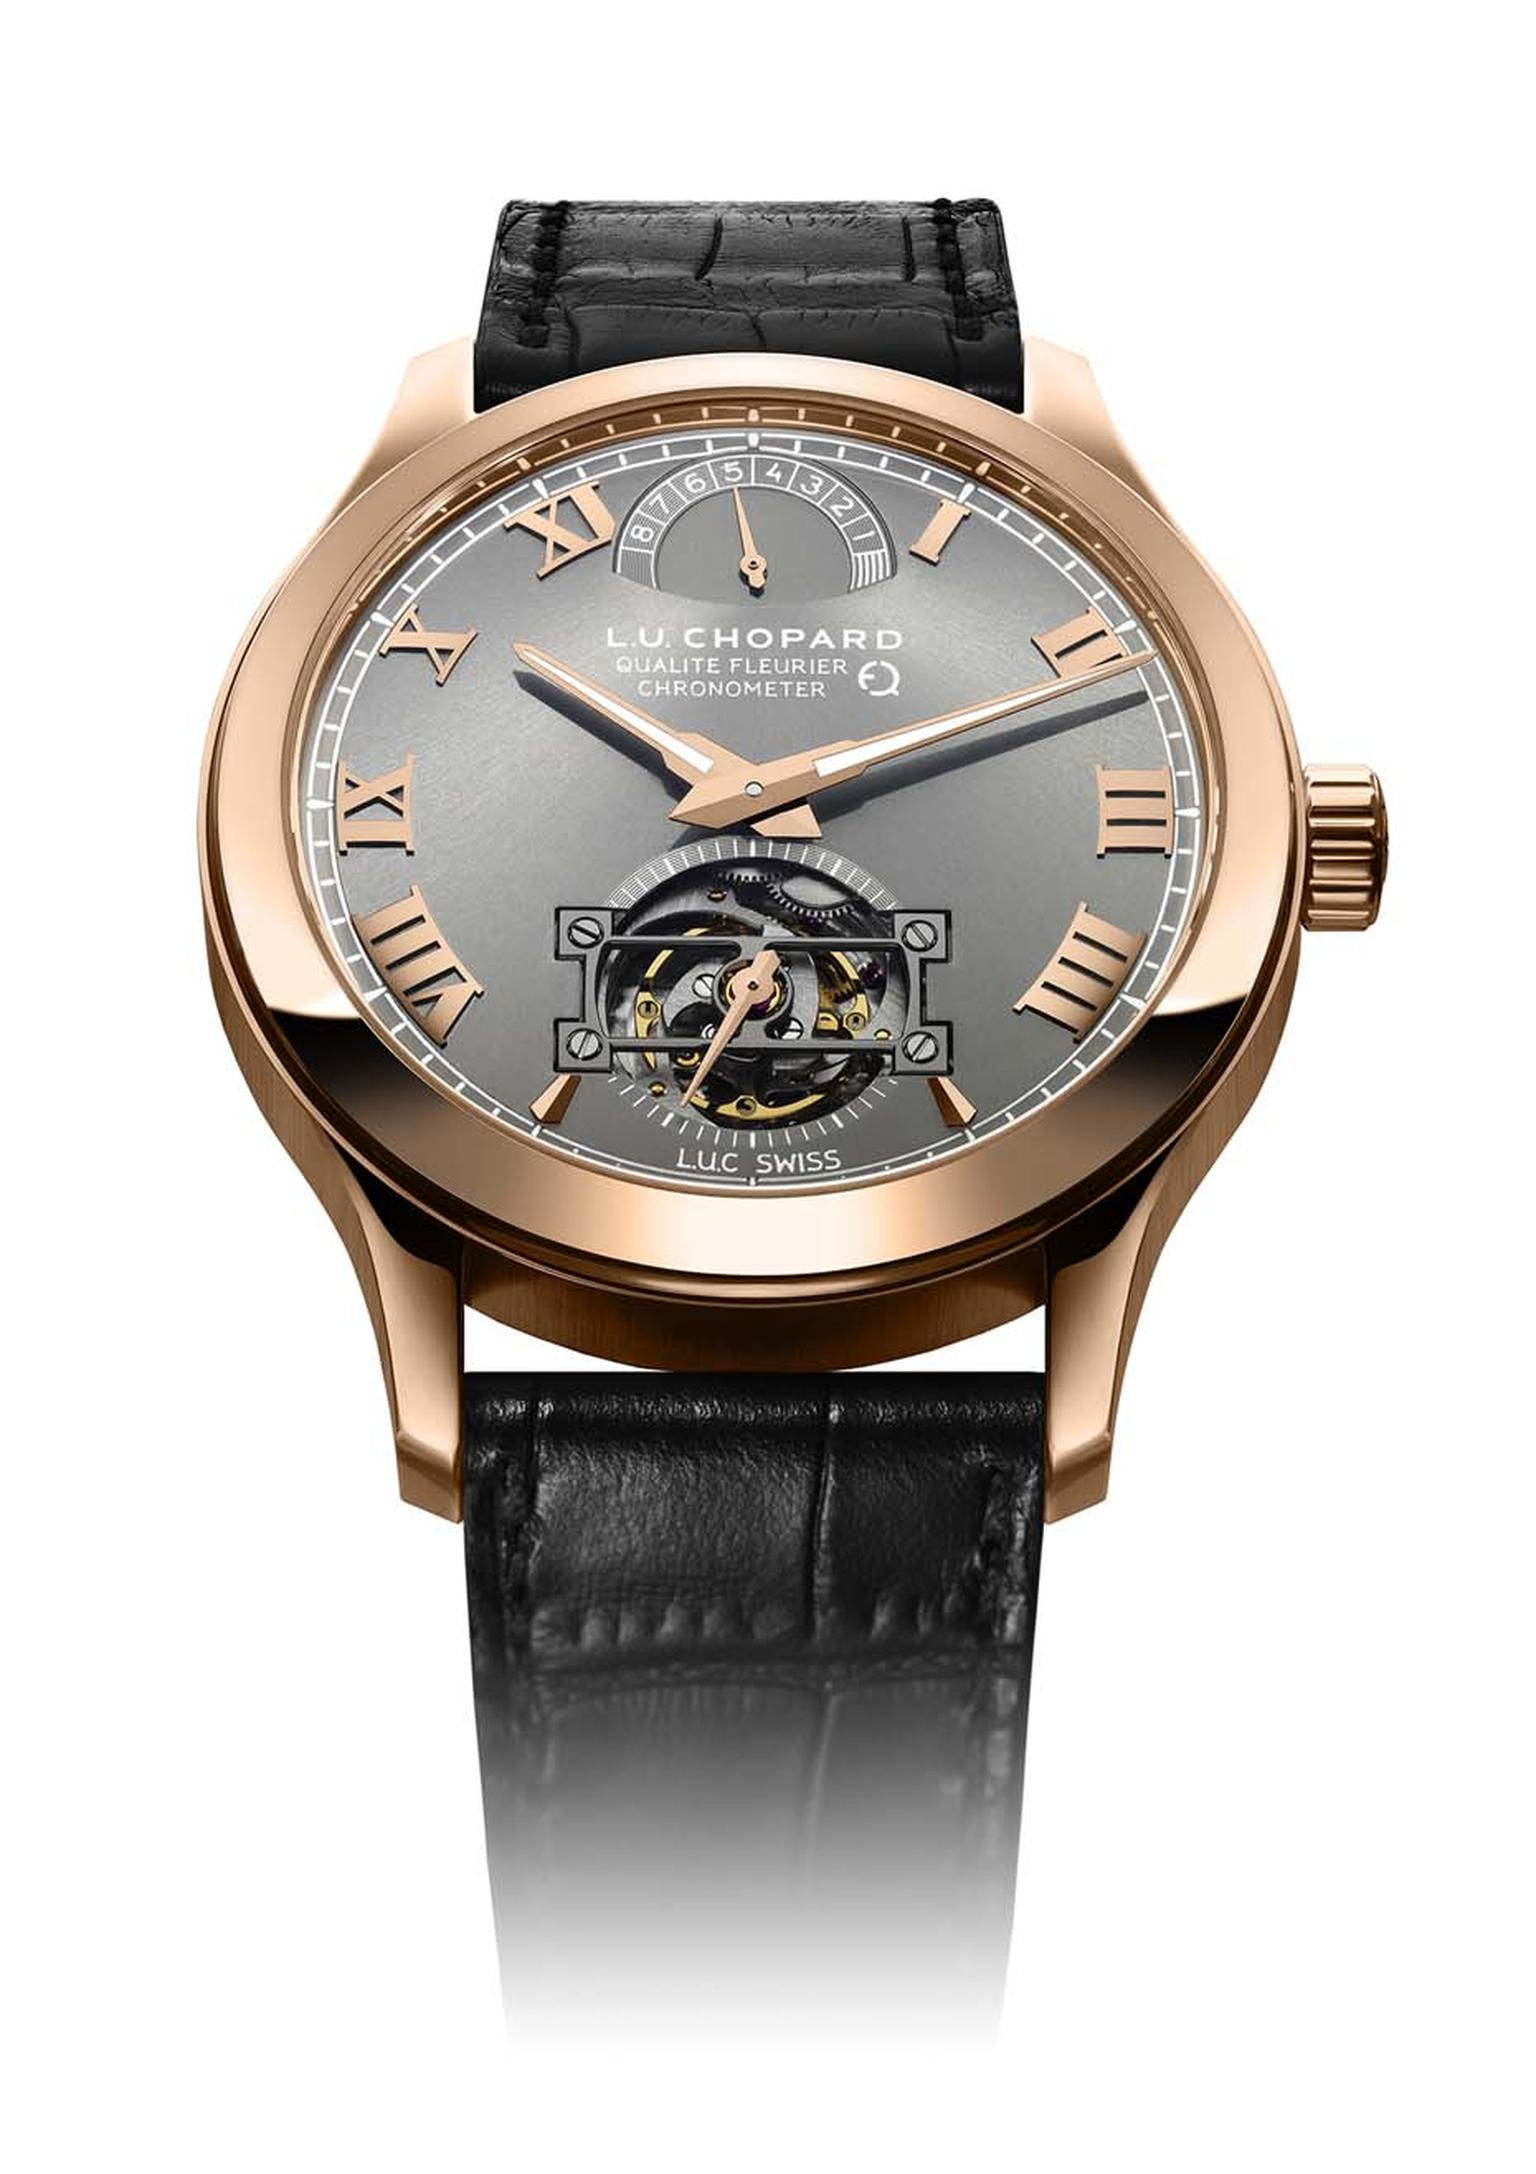 Chopard's new L.U.C Tourbillon QF Fairmined is the only watch in the world that can guarantee the gold used in its making was mined in a responsible manner.